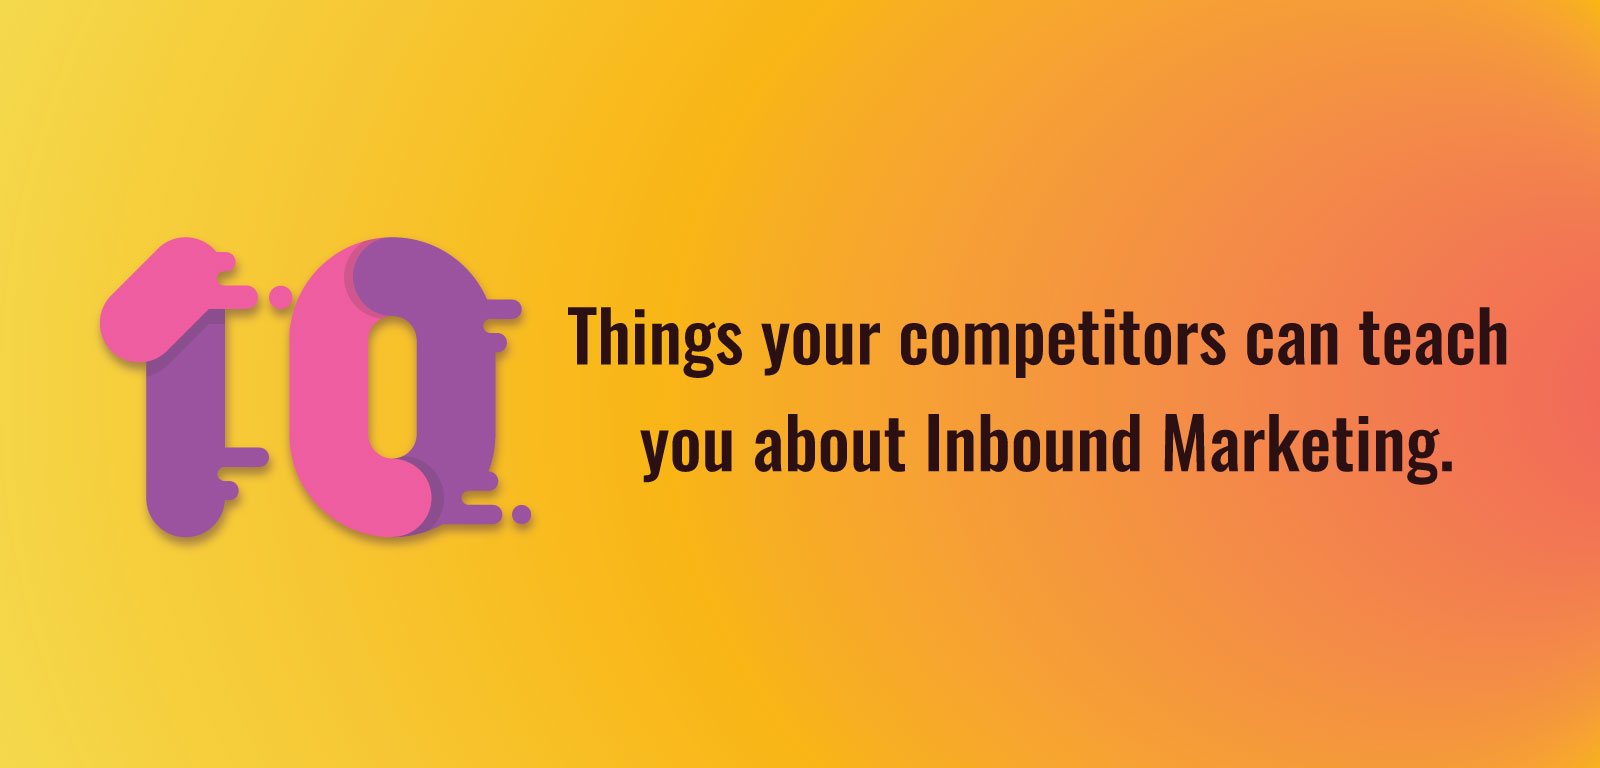 10 Things your competitors can teach you about Inbound Marketing